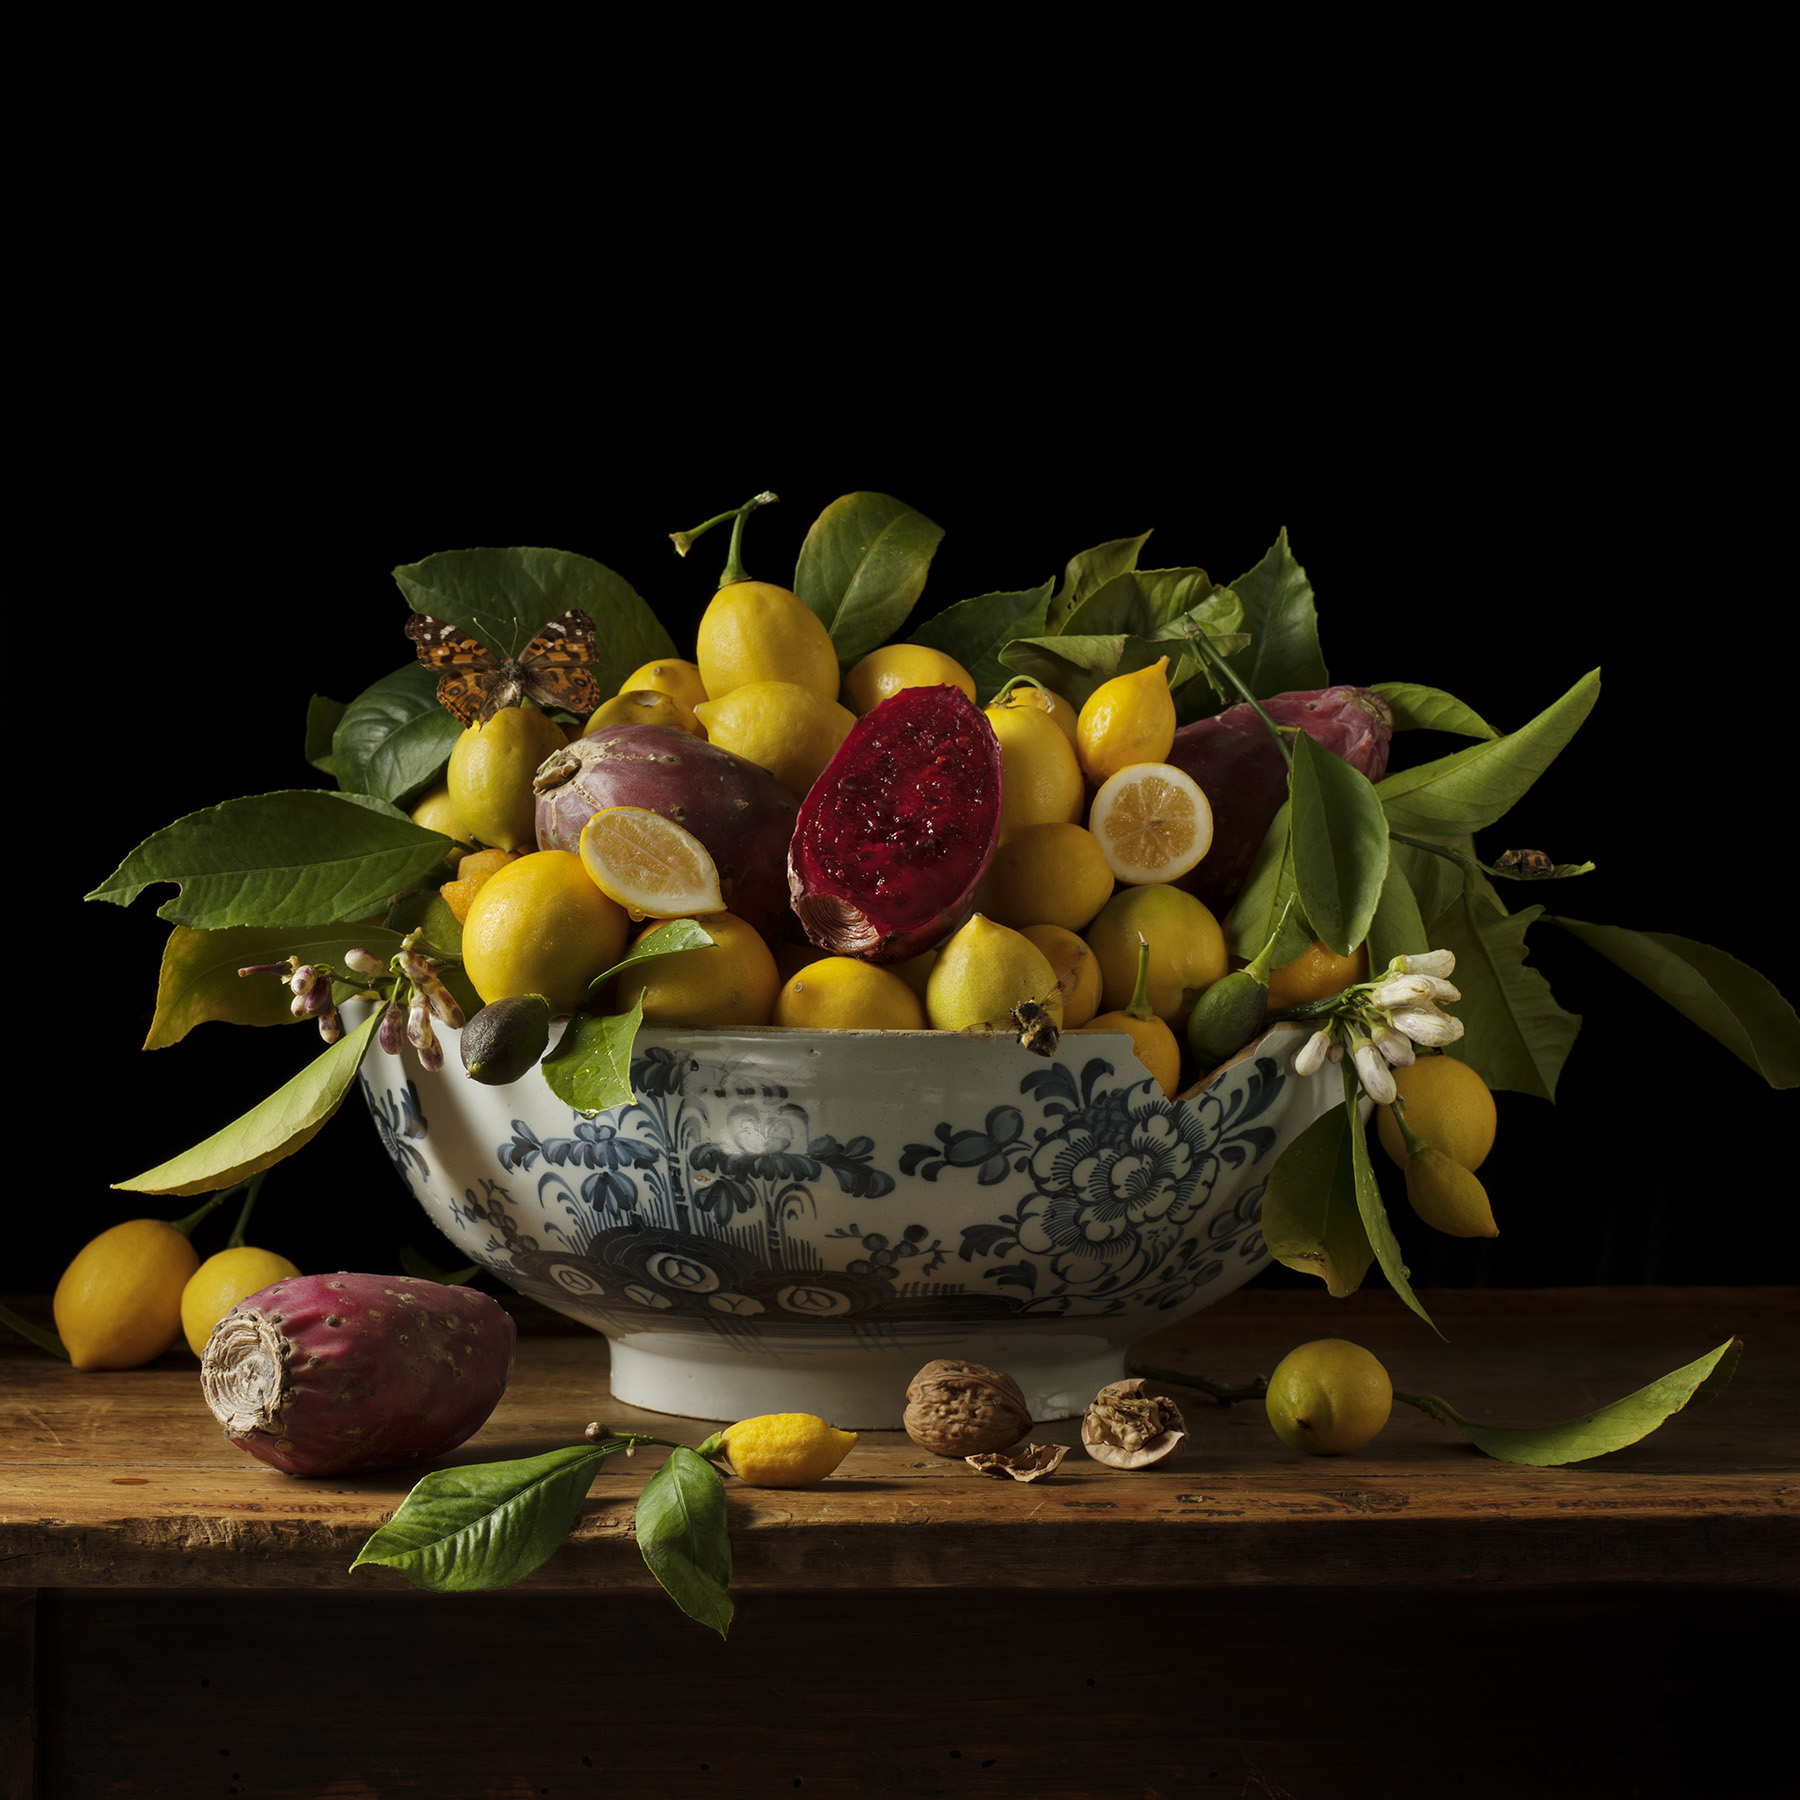 Lemons and Prickly Pears, 2013